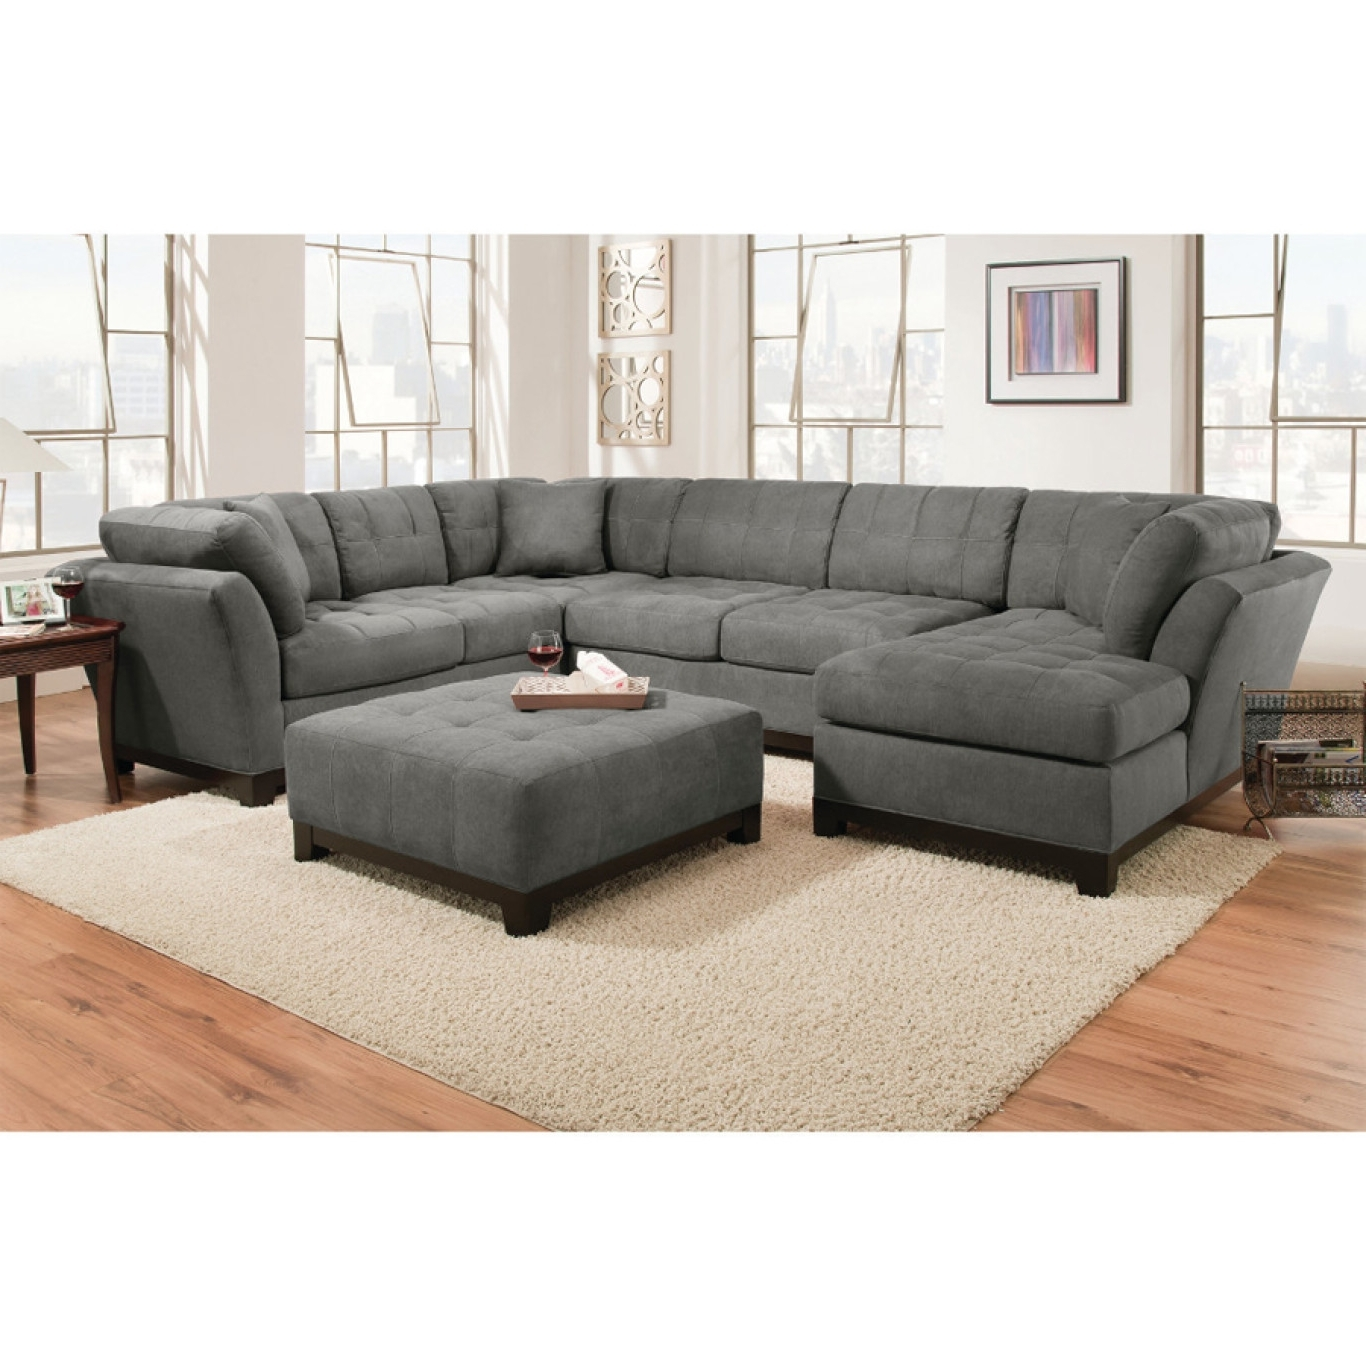 Popular Bassett Furniture Greensboro Nc For Greensboro Nc Sectional Sofas (View 15 of 15)